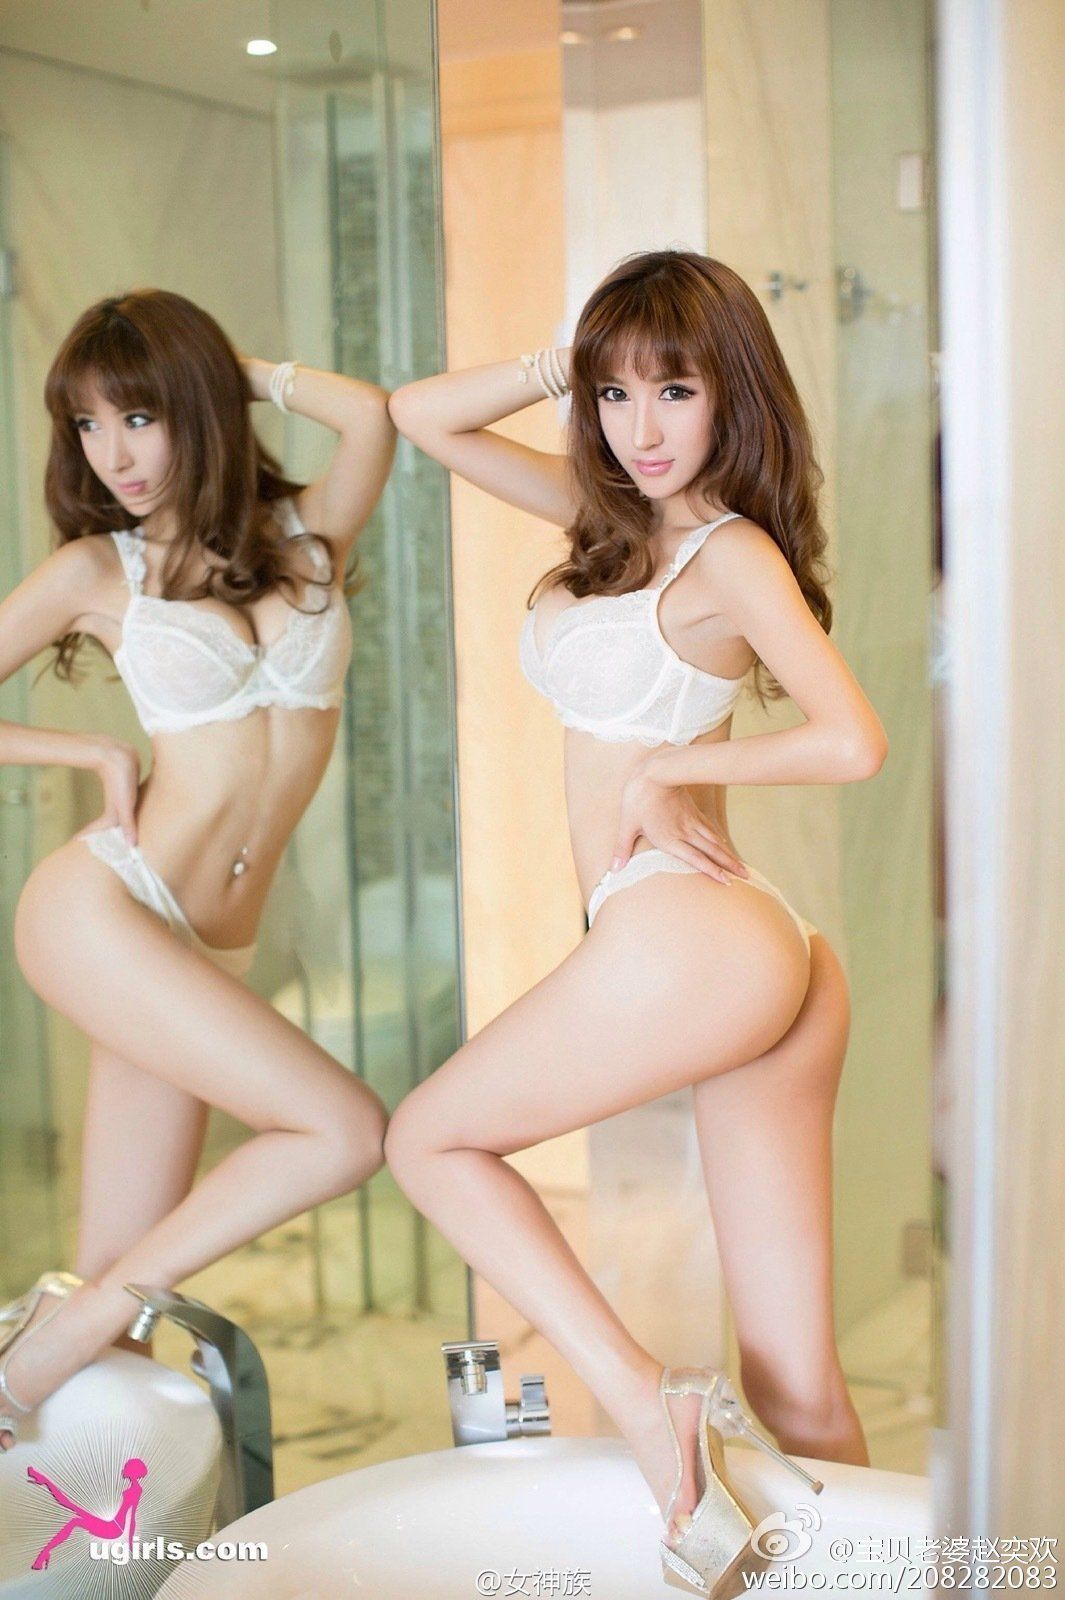 Nude girls hot asian sexy naked